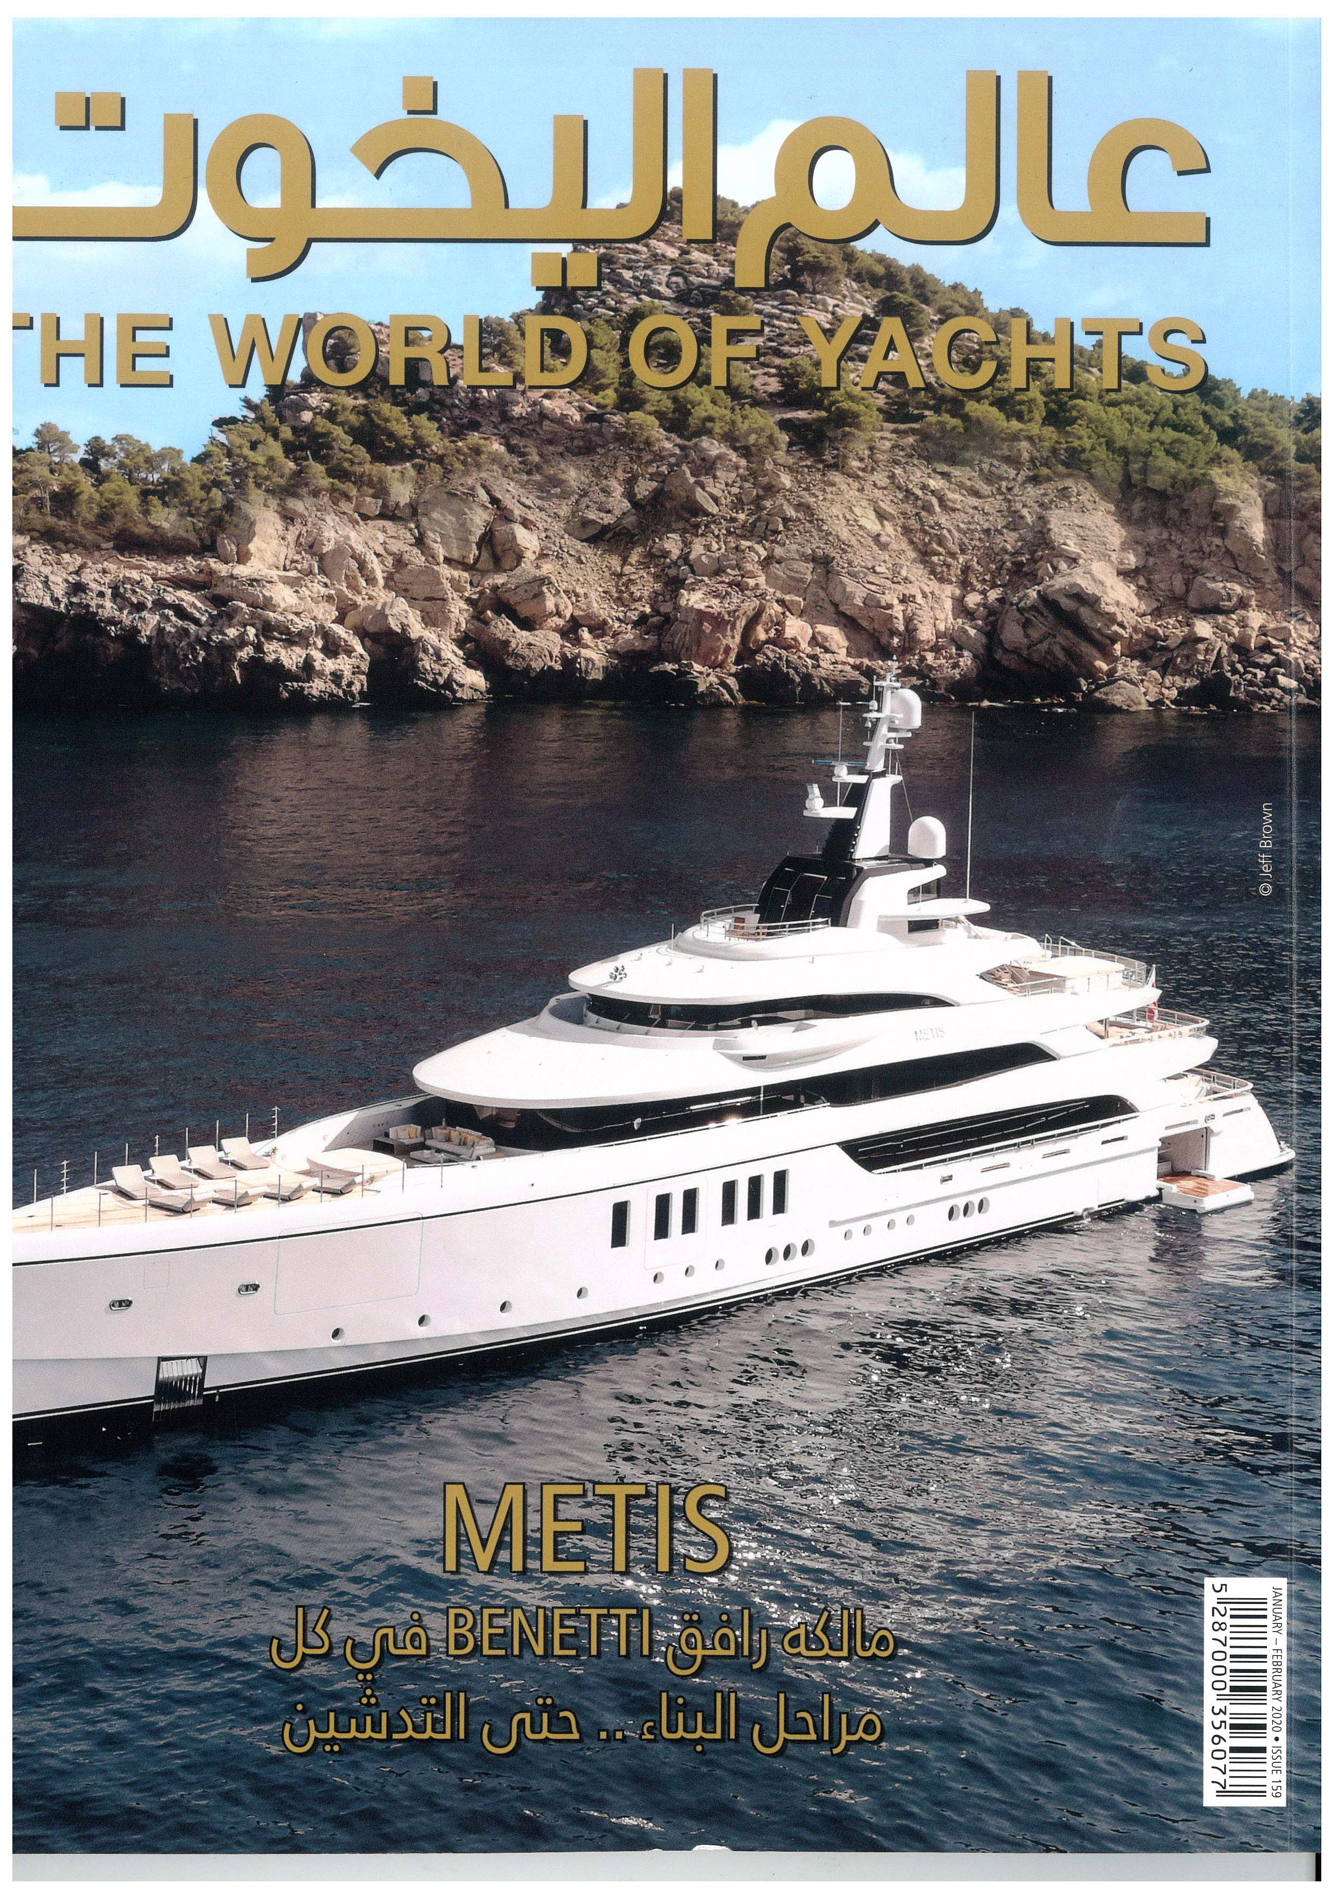 The Wolrd of Yachts, Jan-Feb 2020